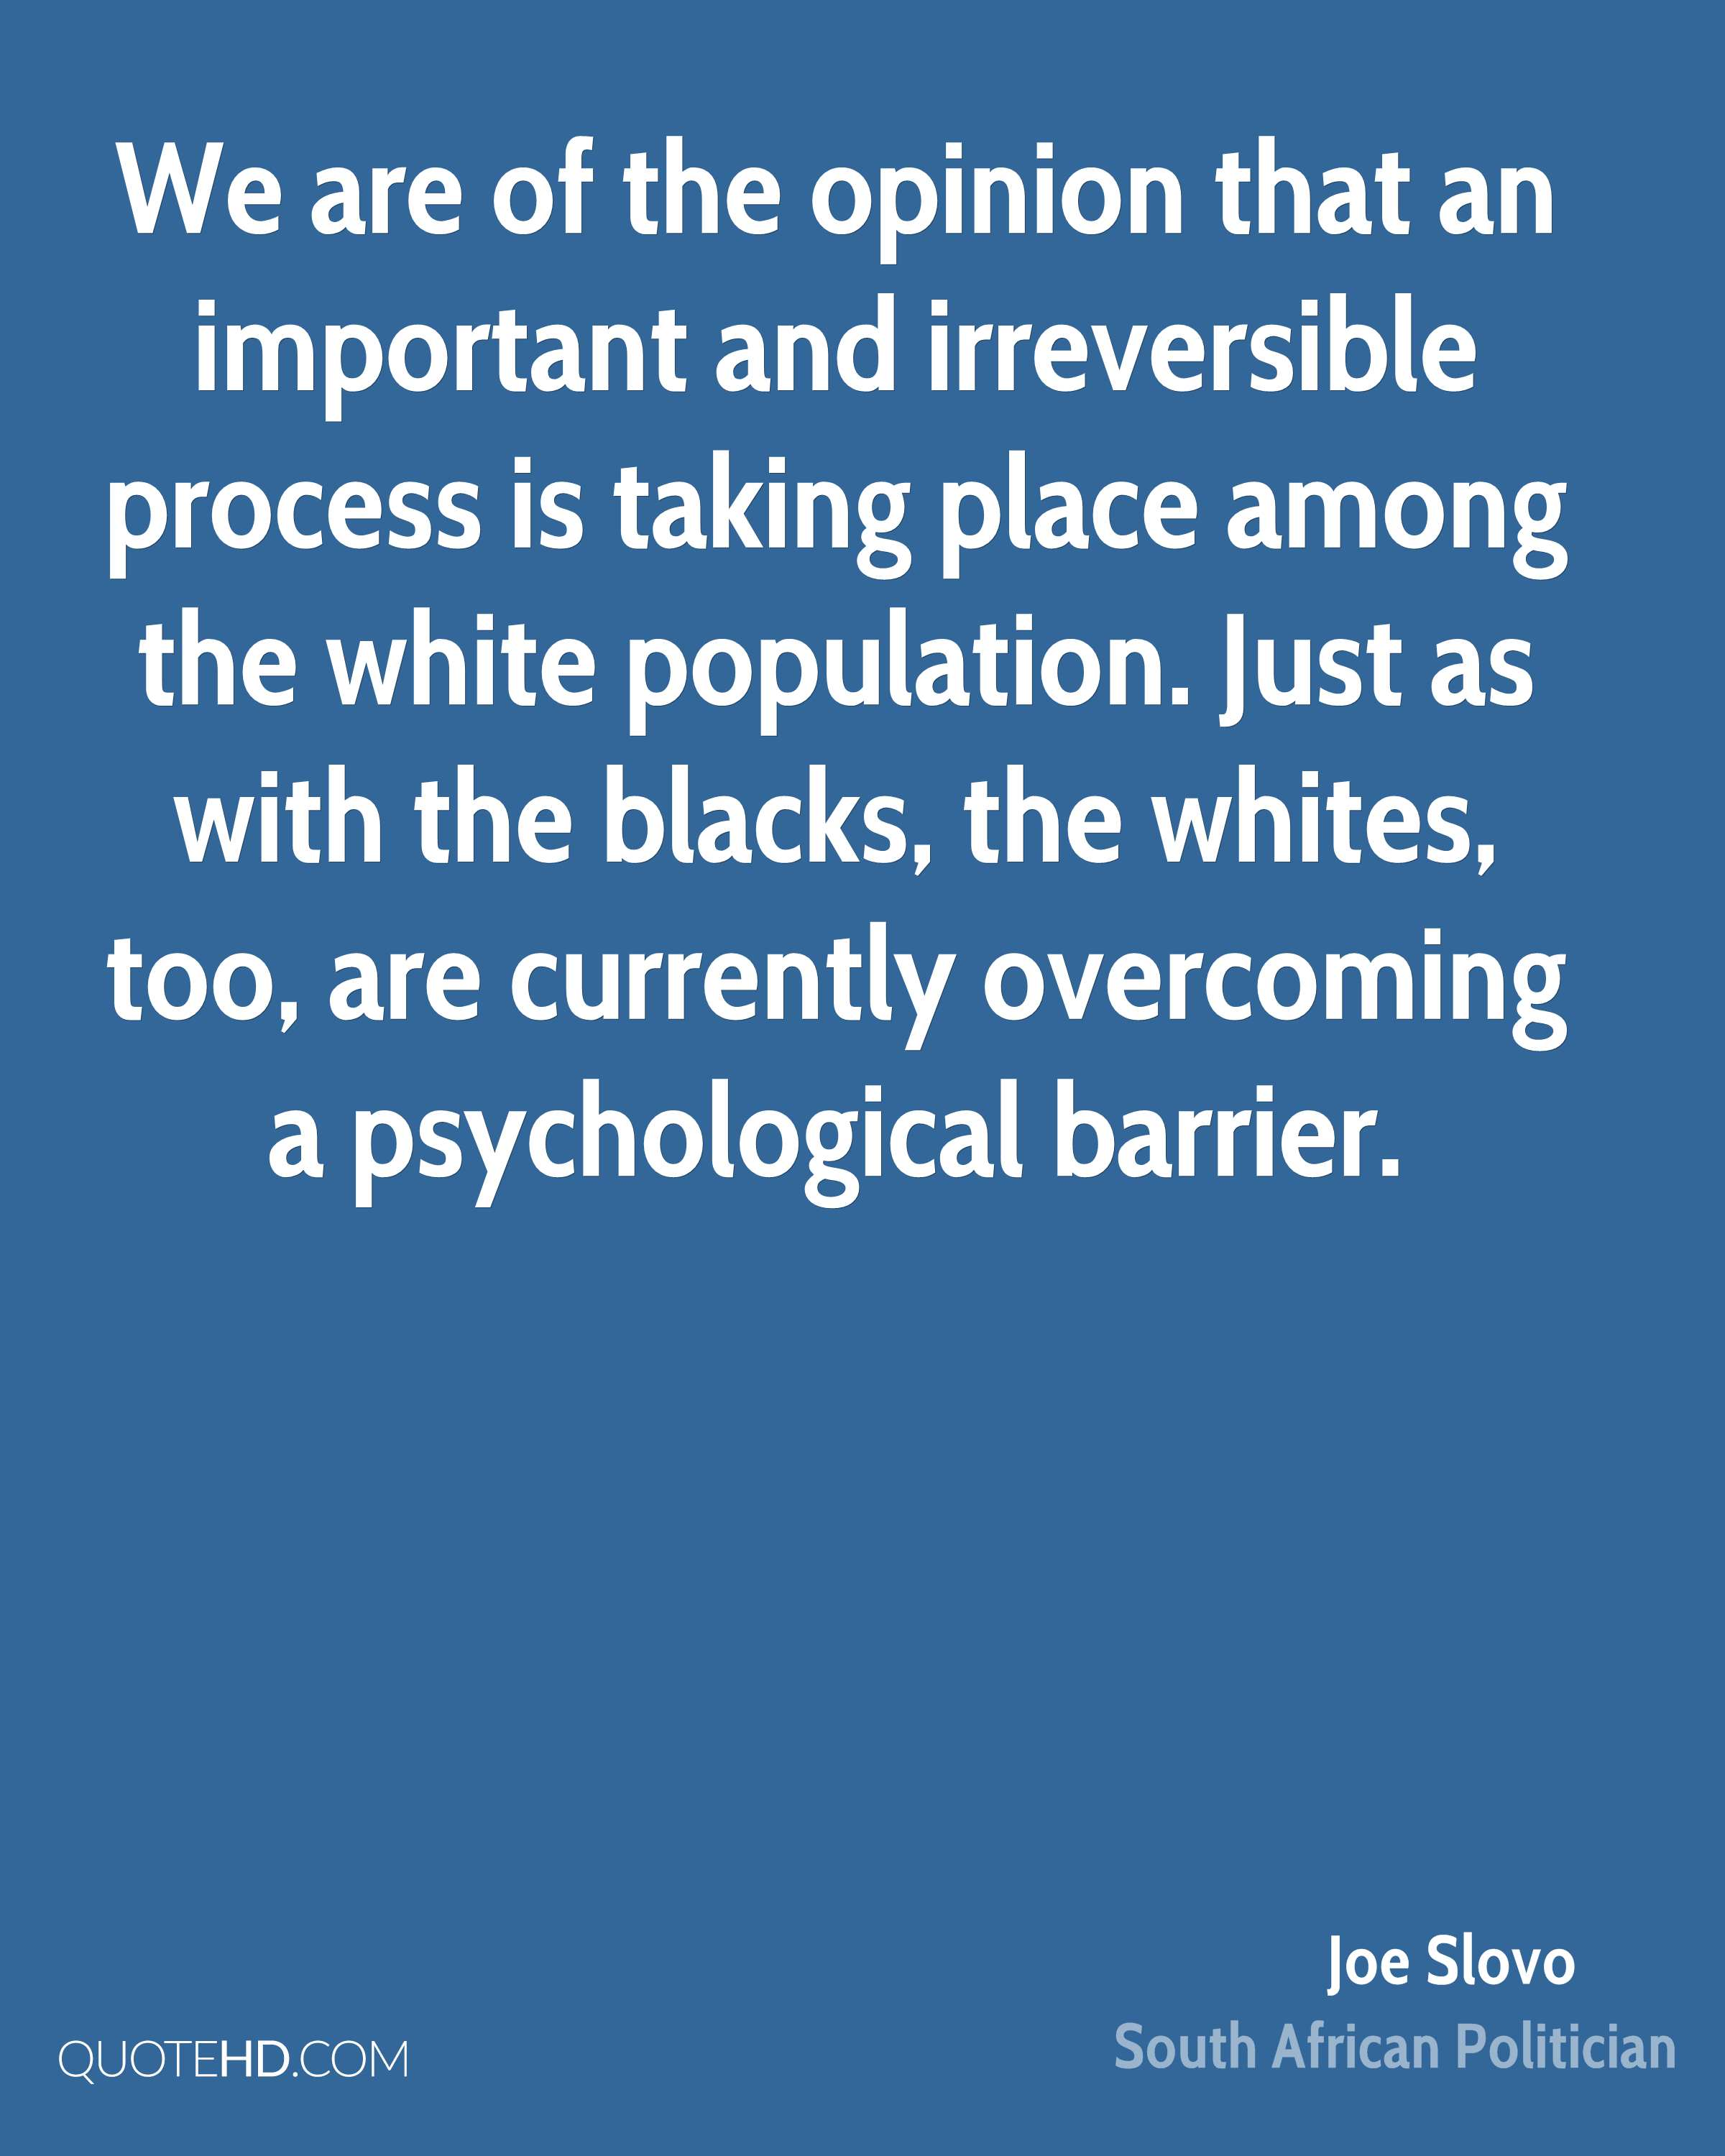 We are of the opinion that an important and irreversible process is taking place among the white population. Just as with the blacks, the whites, too, are currently overcoming a psychological barrier.